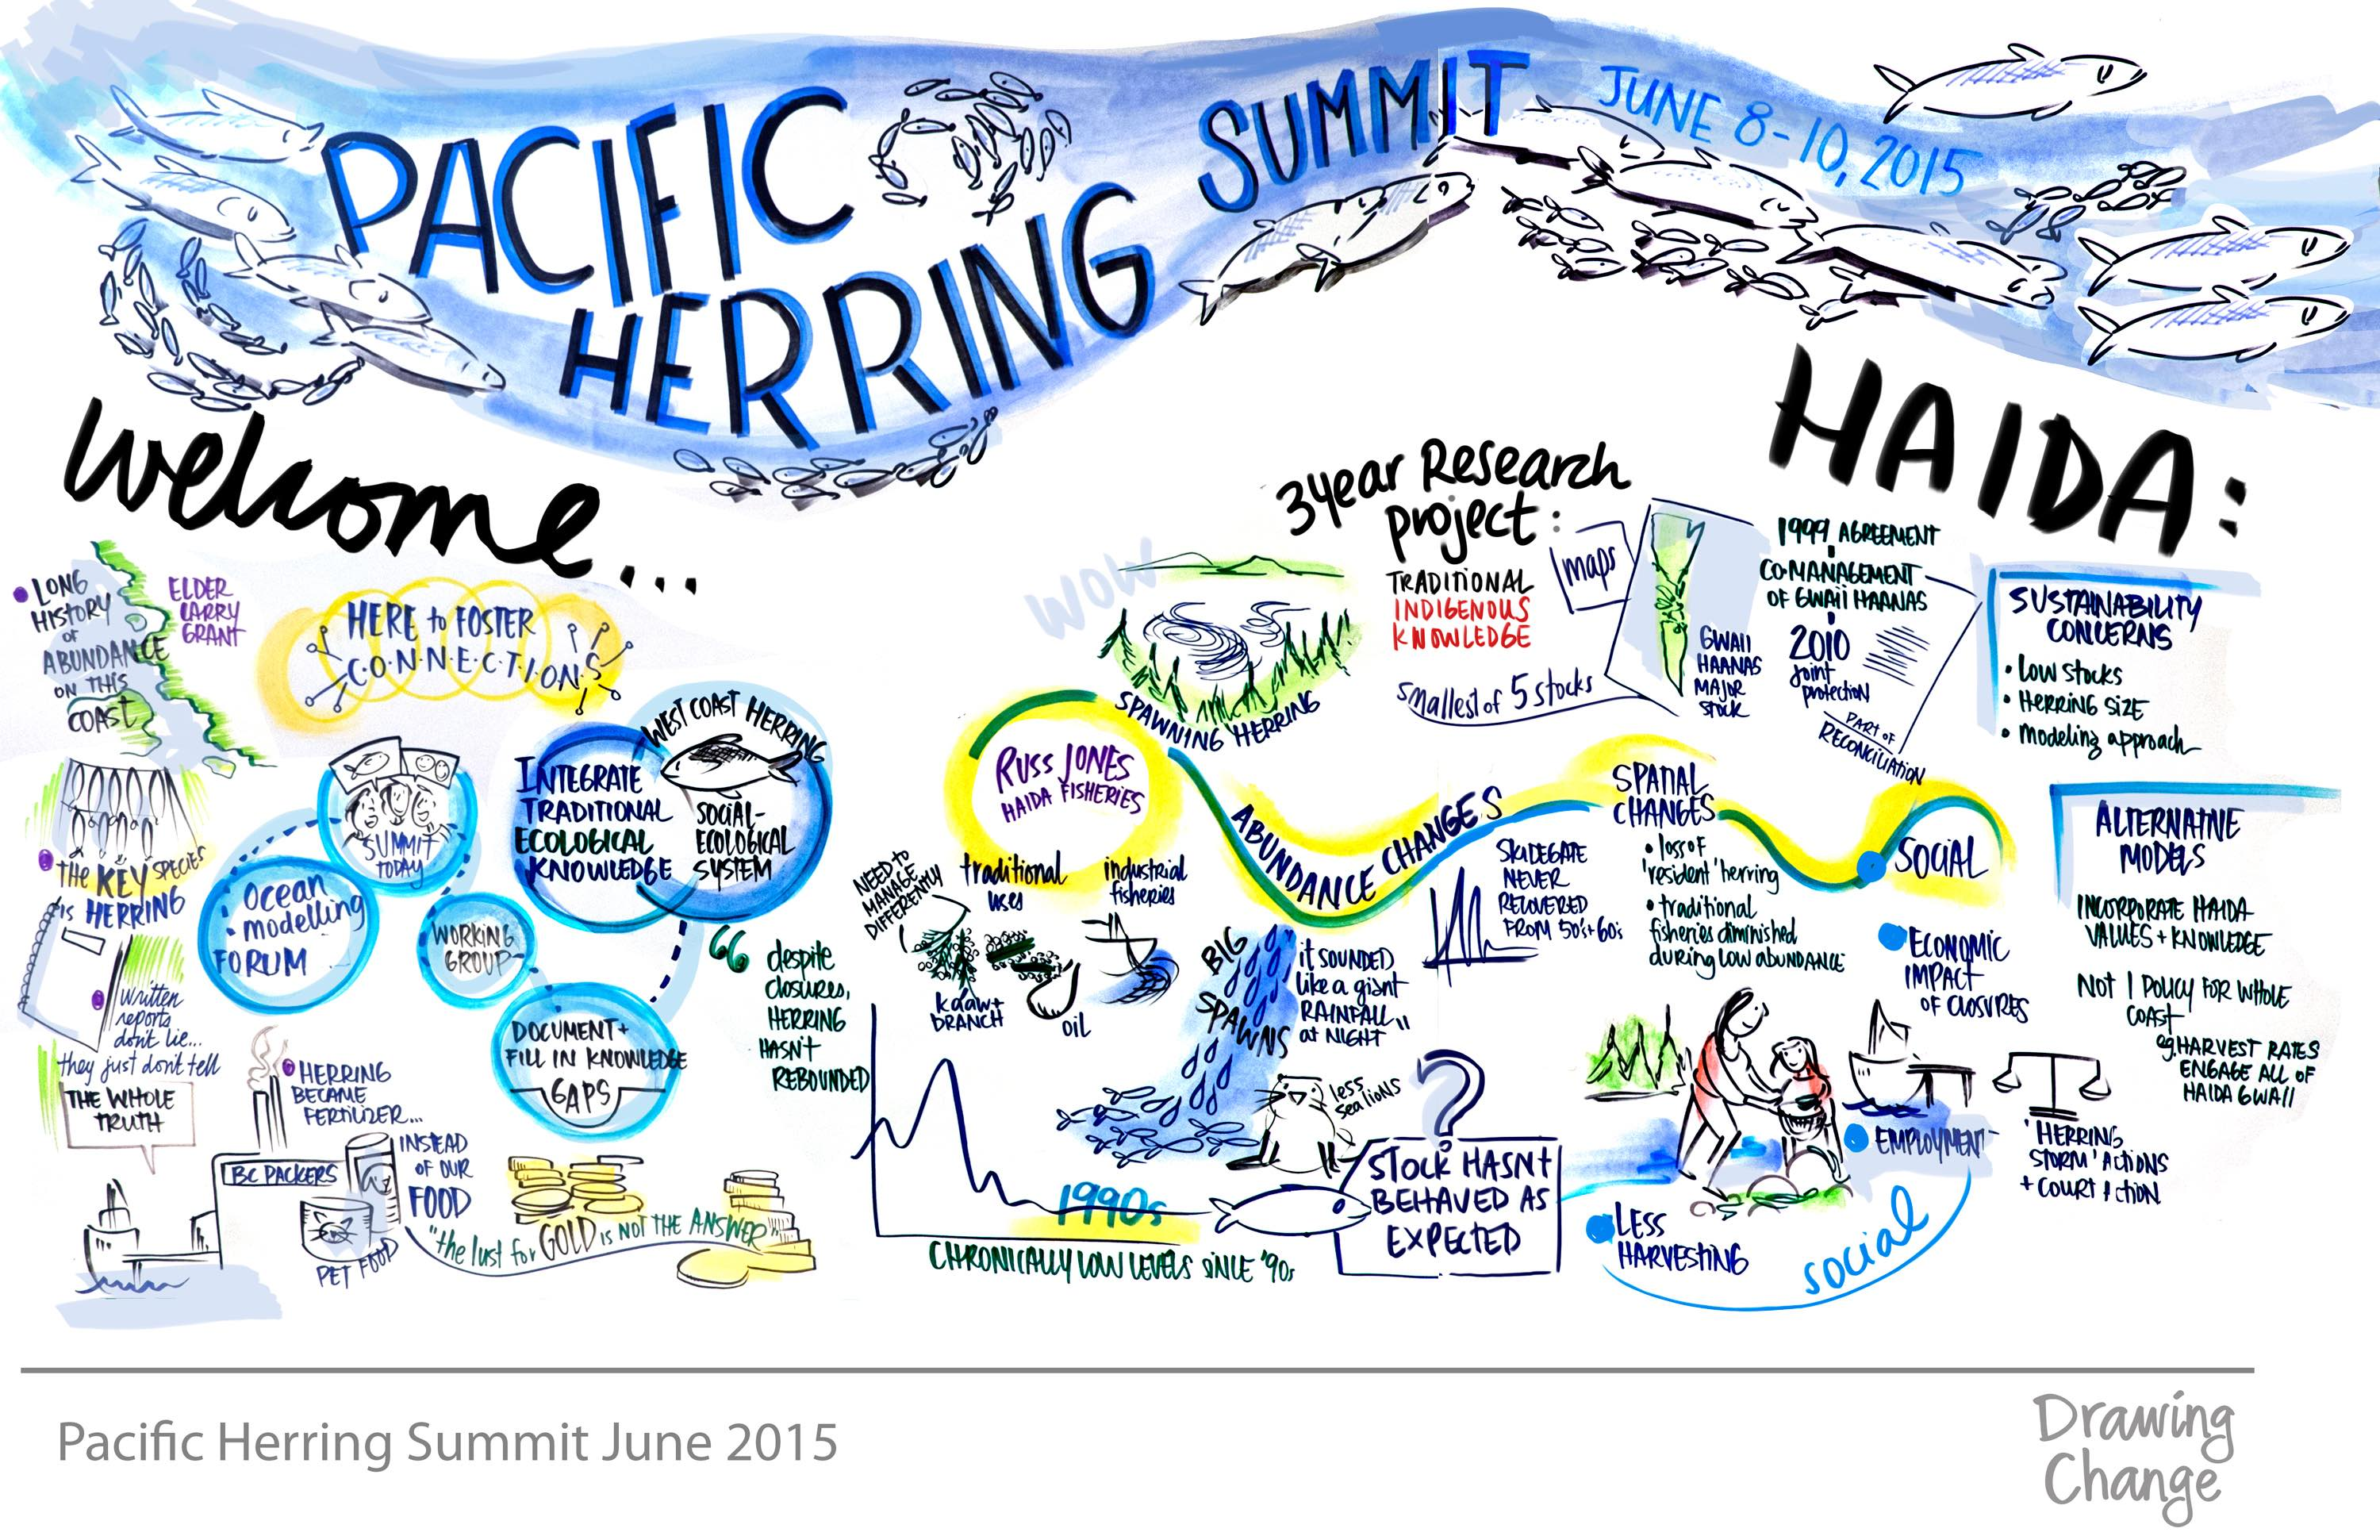 Pacific Herring Summit Haida Presentation and opening